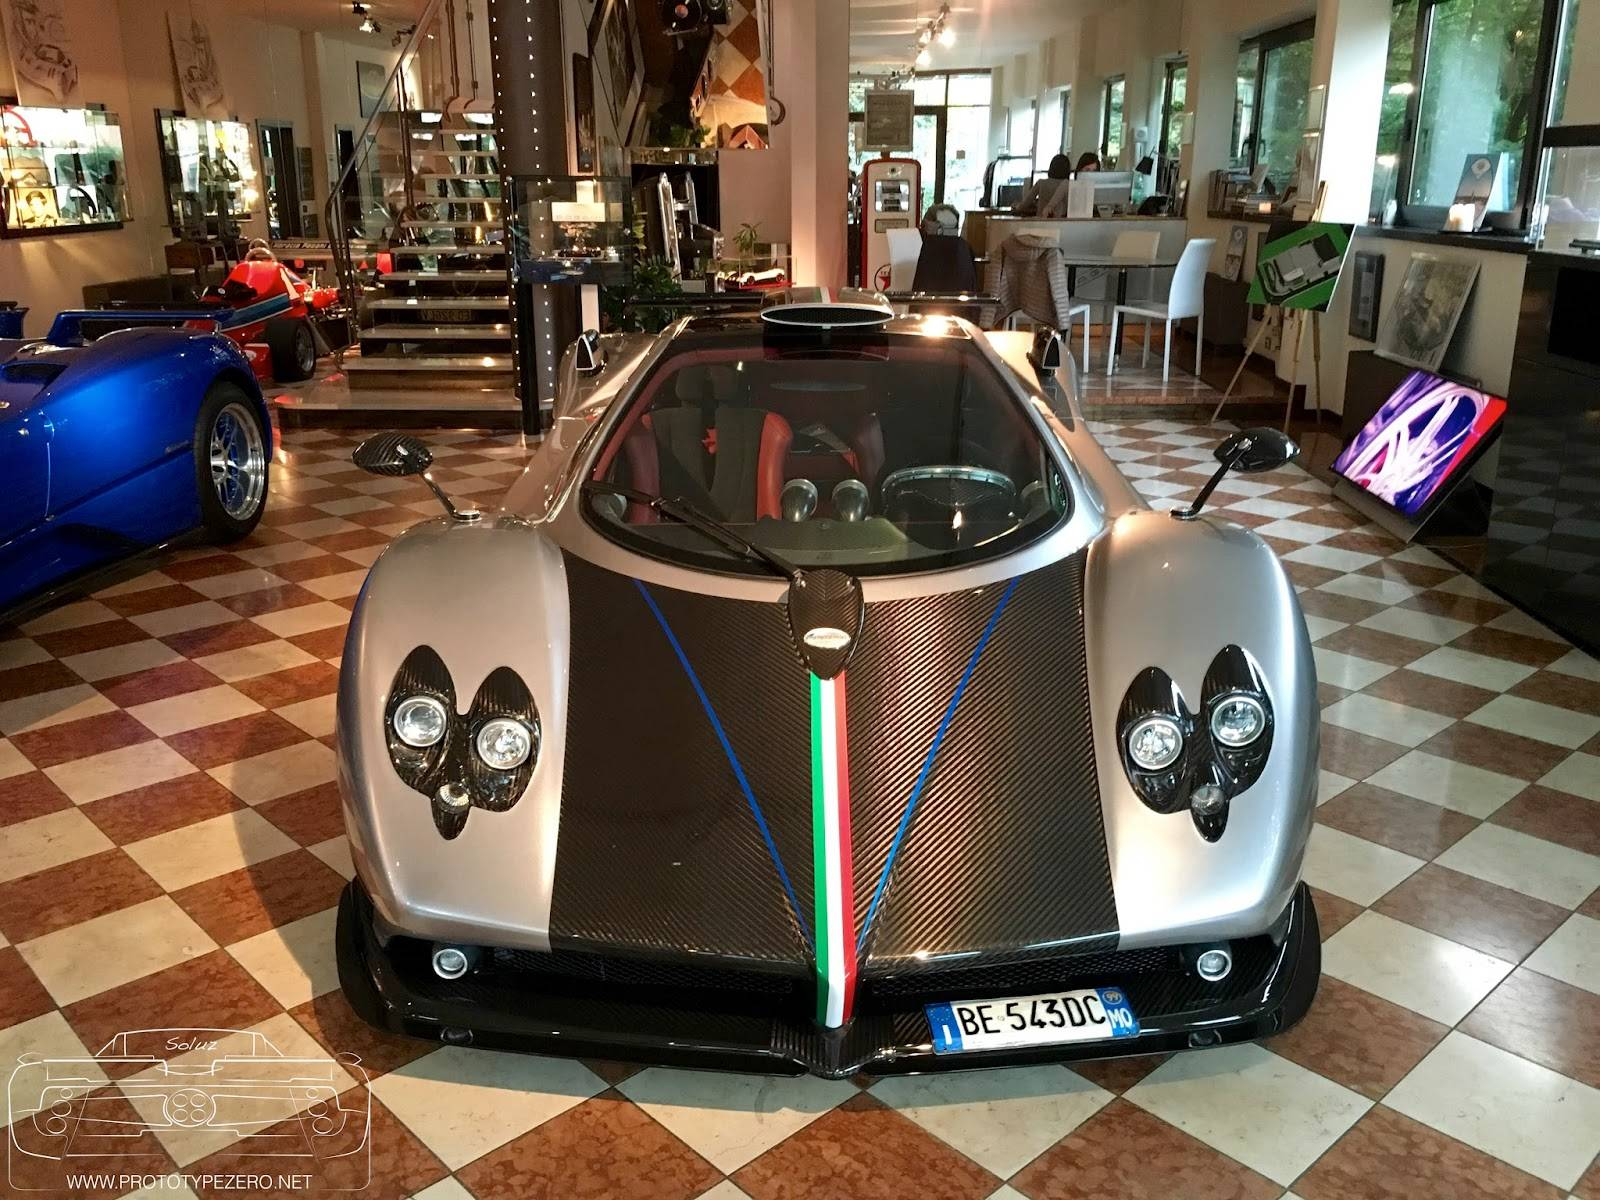 pagani zonda la nonna: a zonda with 1,000,000km on the odometer